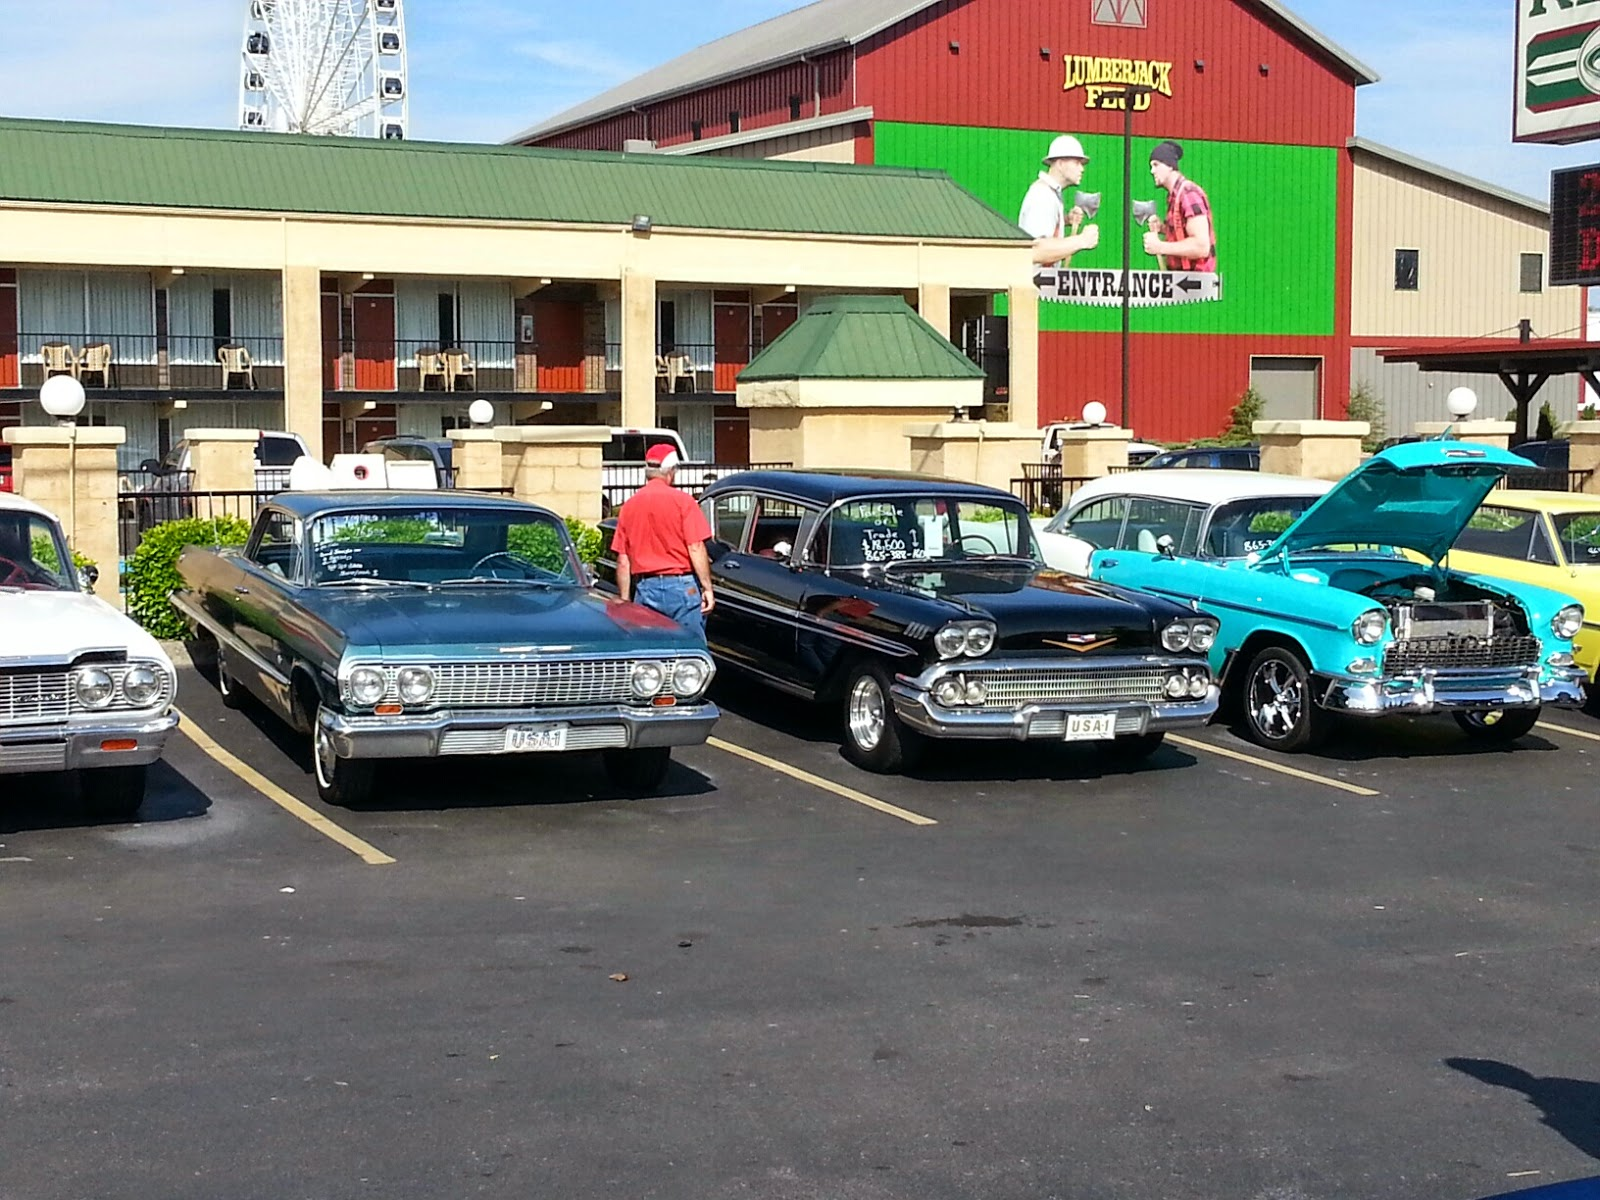 So much to see at the Pigeon Forge Rod Run